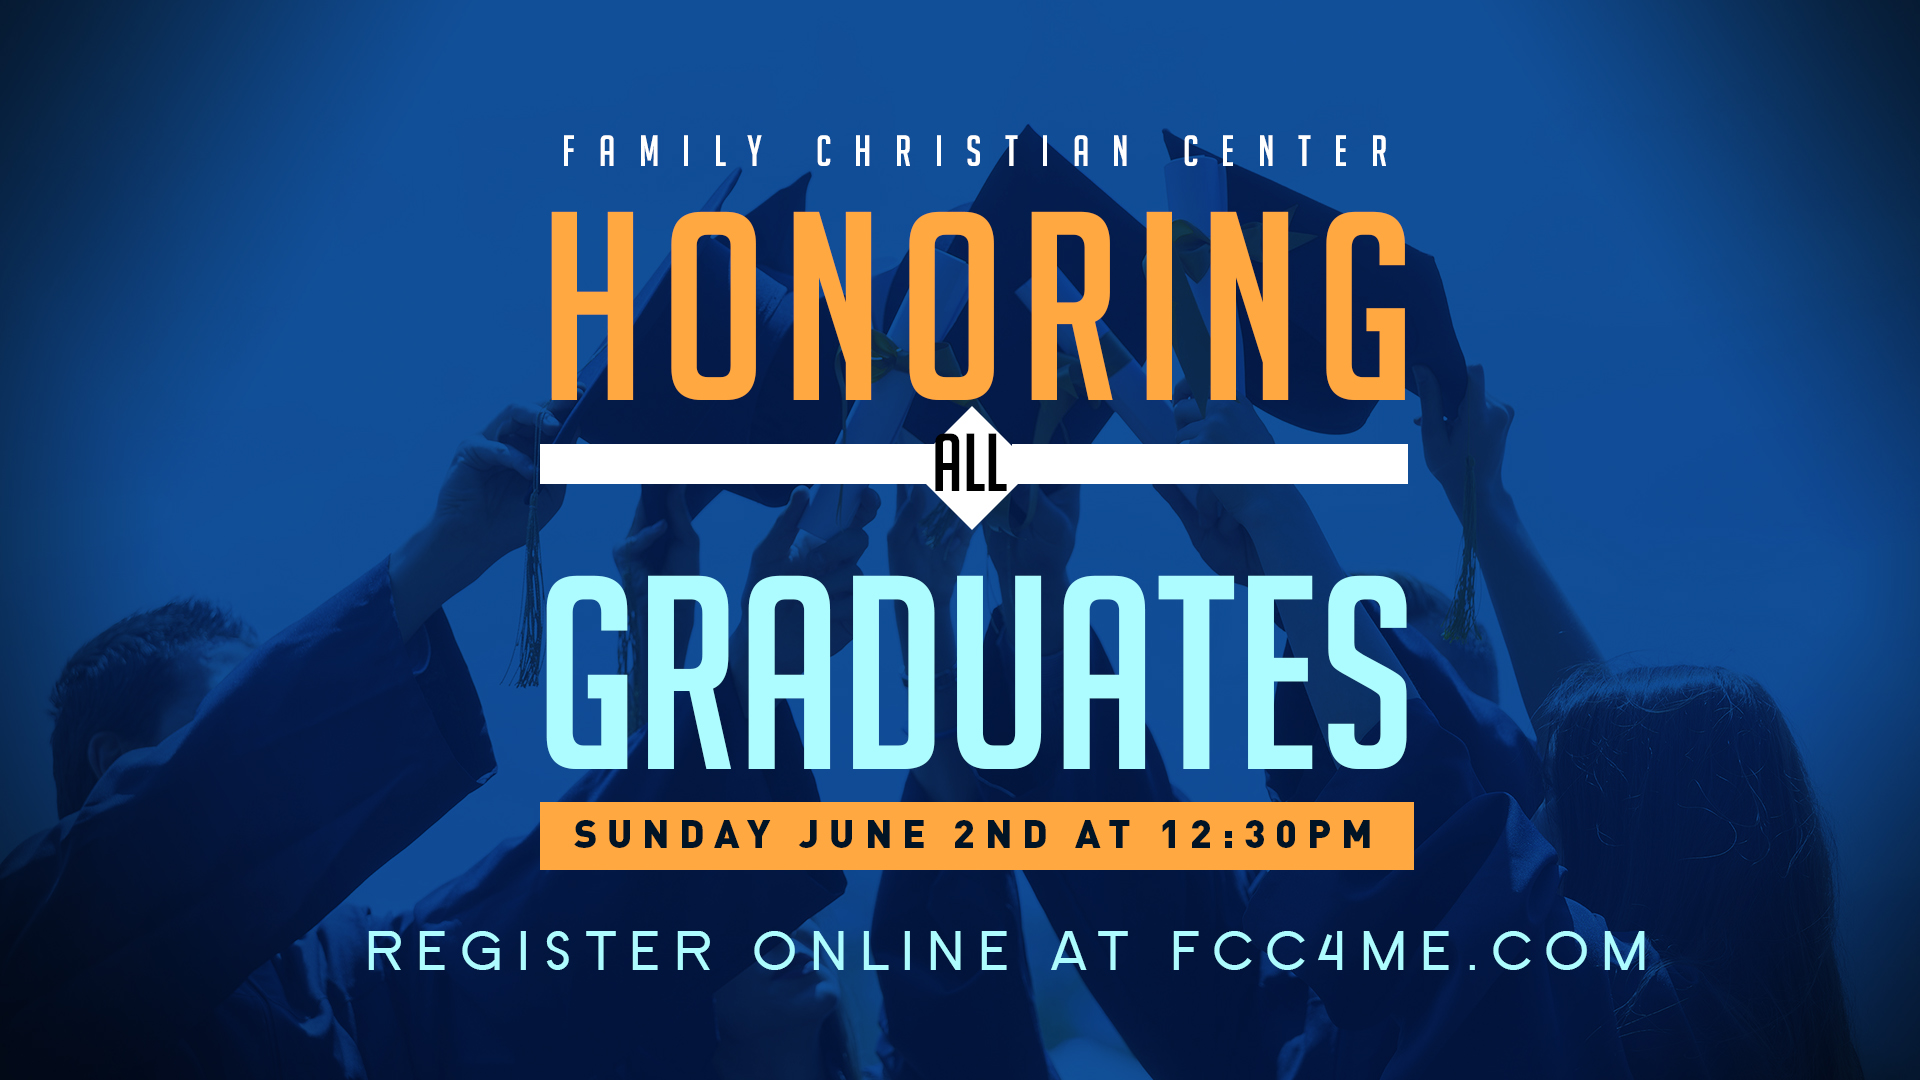 Calling all graduates! We want to honor all high school and college graduates on Sunday June 2nd at the 12:30 service. Please fill out form below and arrive at 11am in the gym.     For all student graduates who want to be honored June 2nd for our 1230pm service. Please fill out the info below.